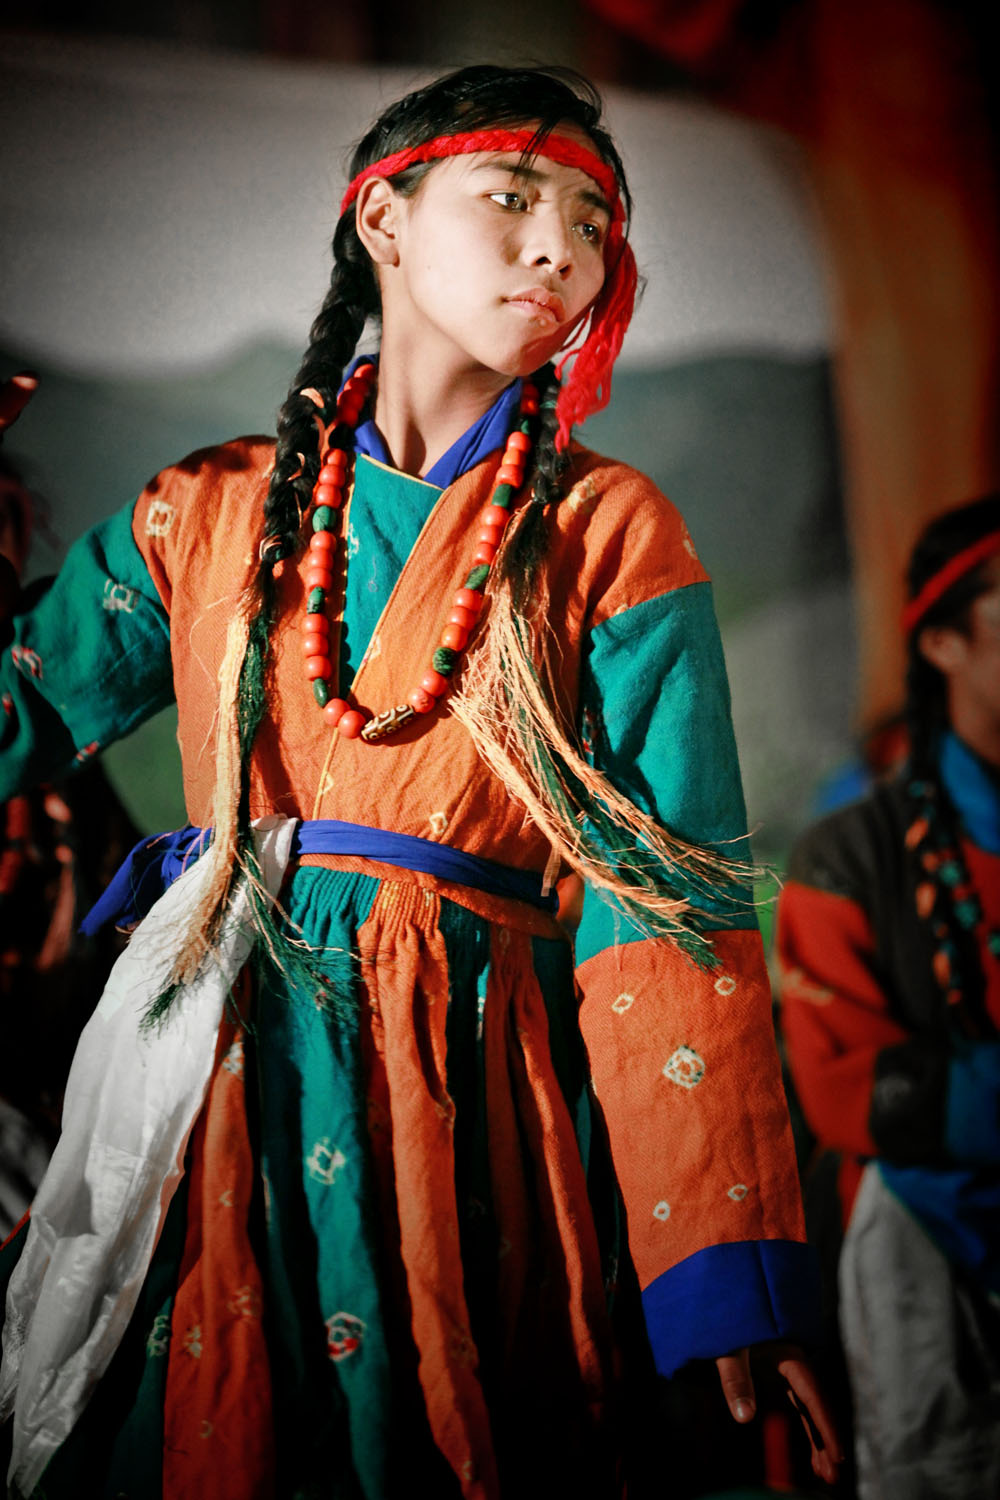 Girl dancing, Ladakh, India